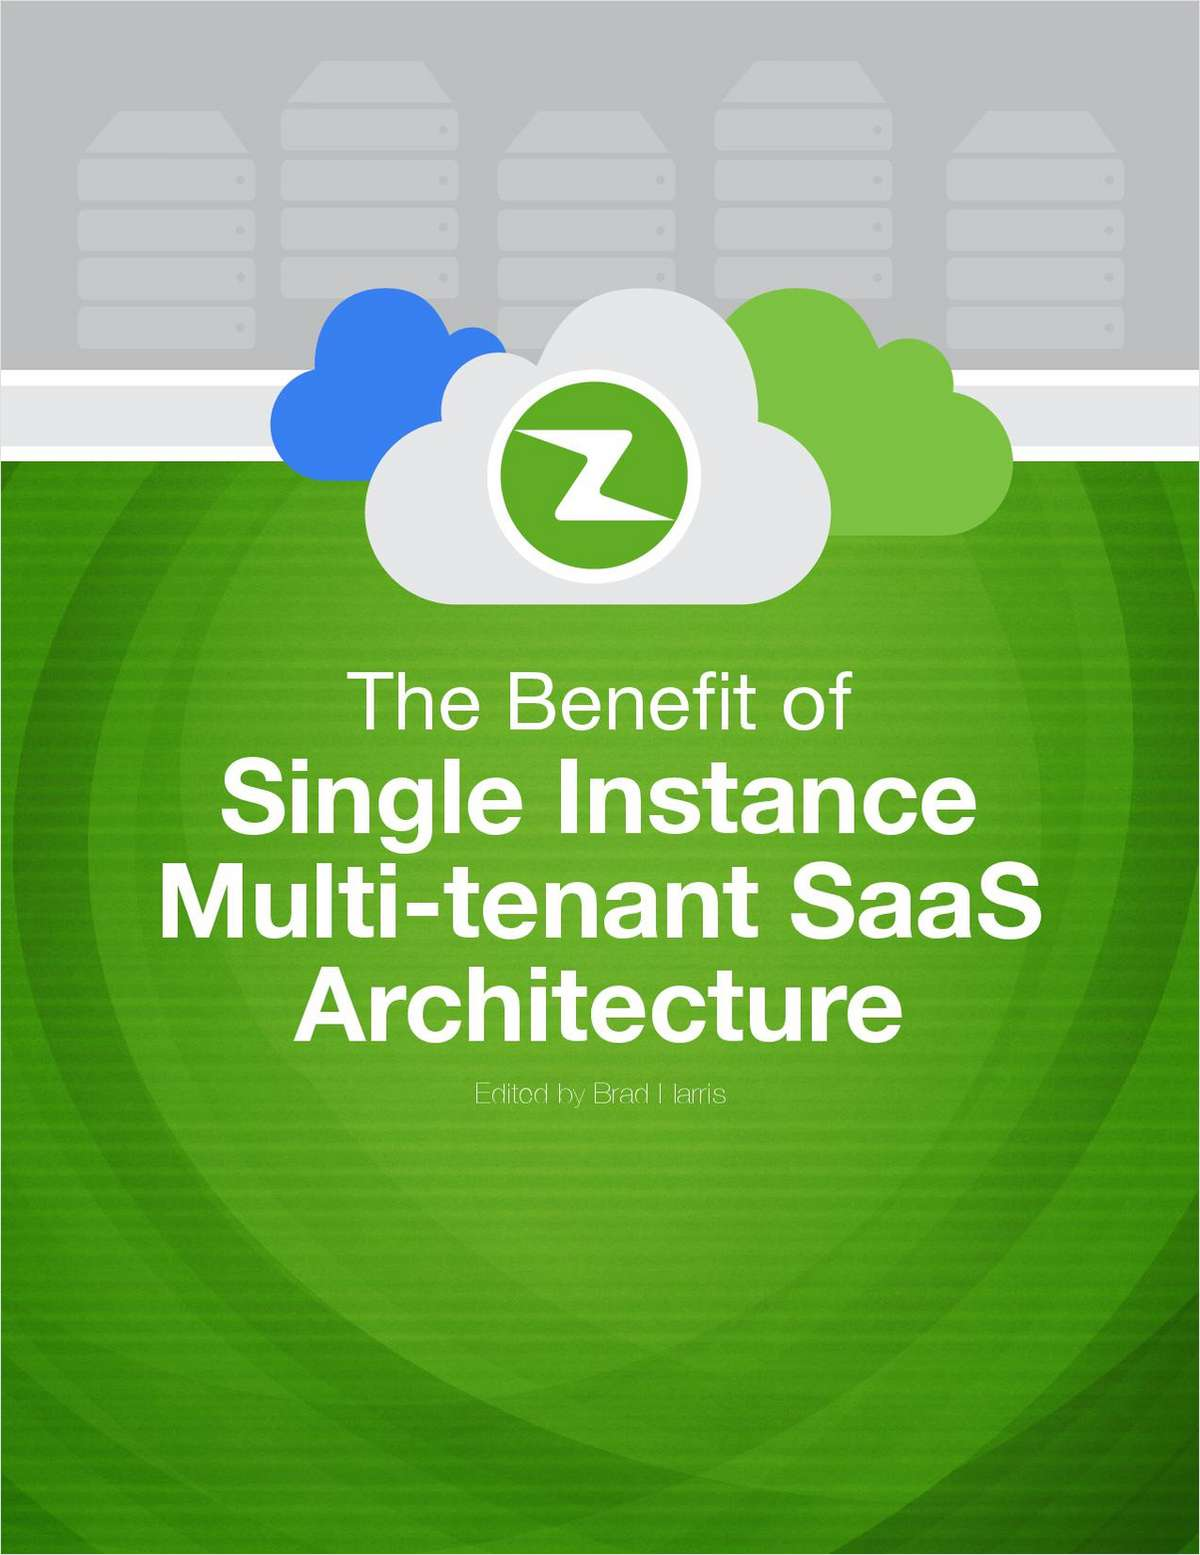 The Benefit of Single Instance Multi-tenant SaaS Architecture